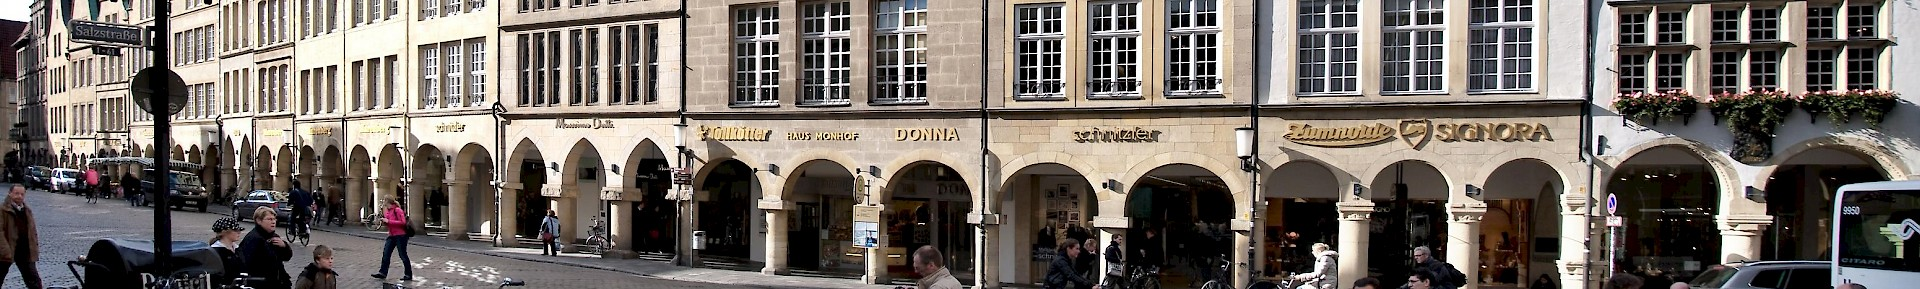 Explore the beautiful city of Muenster